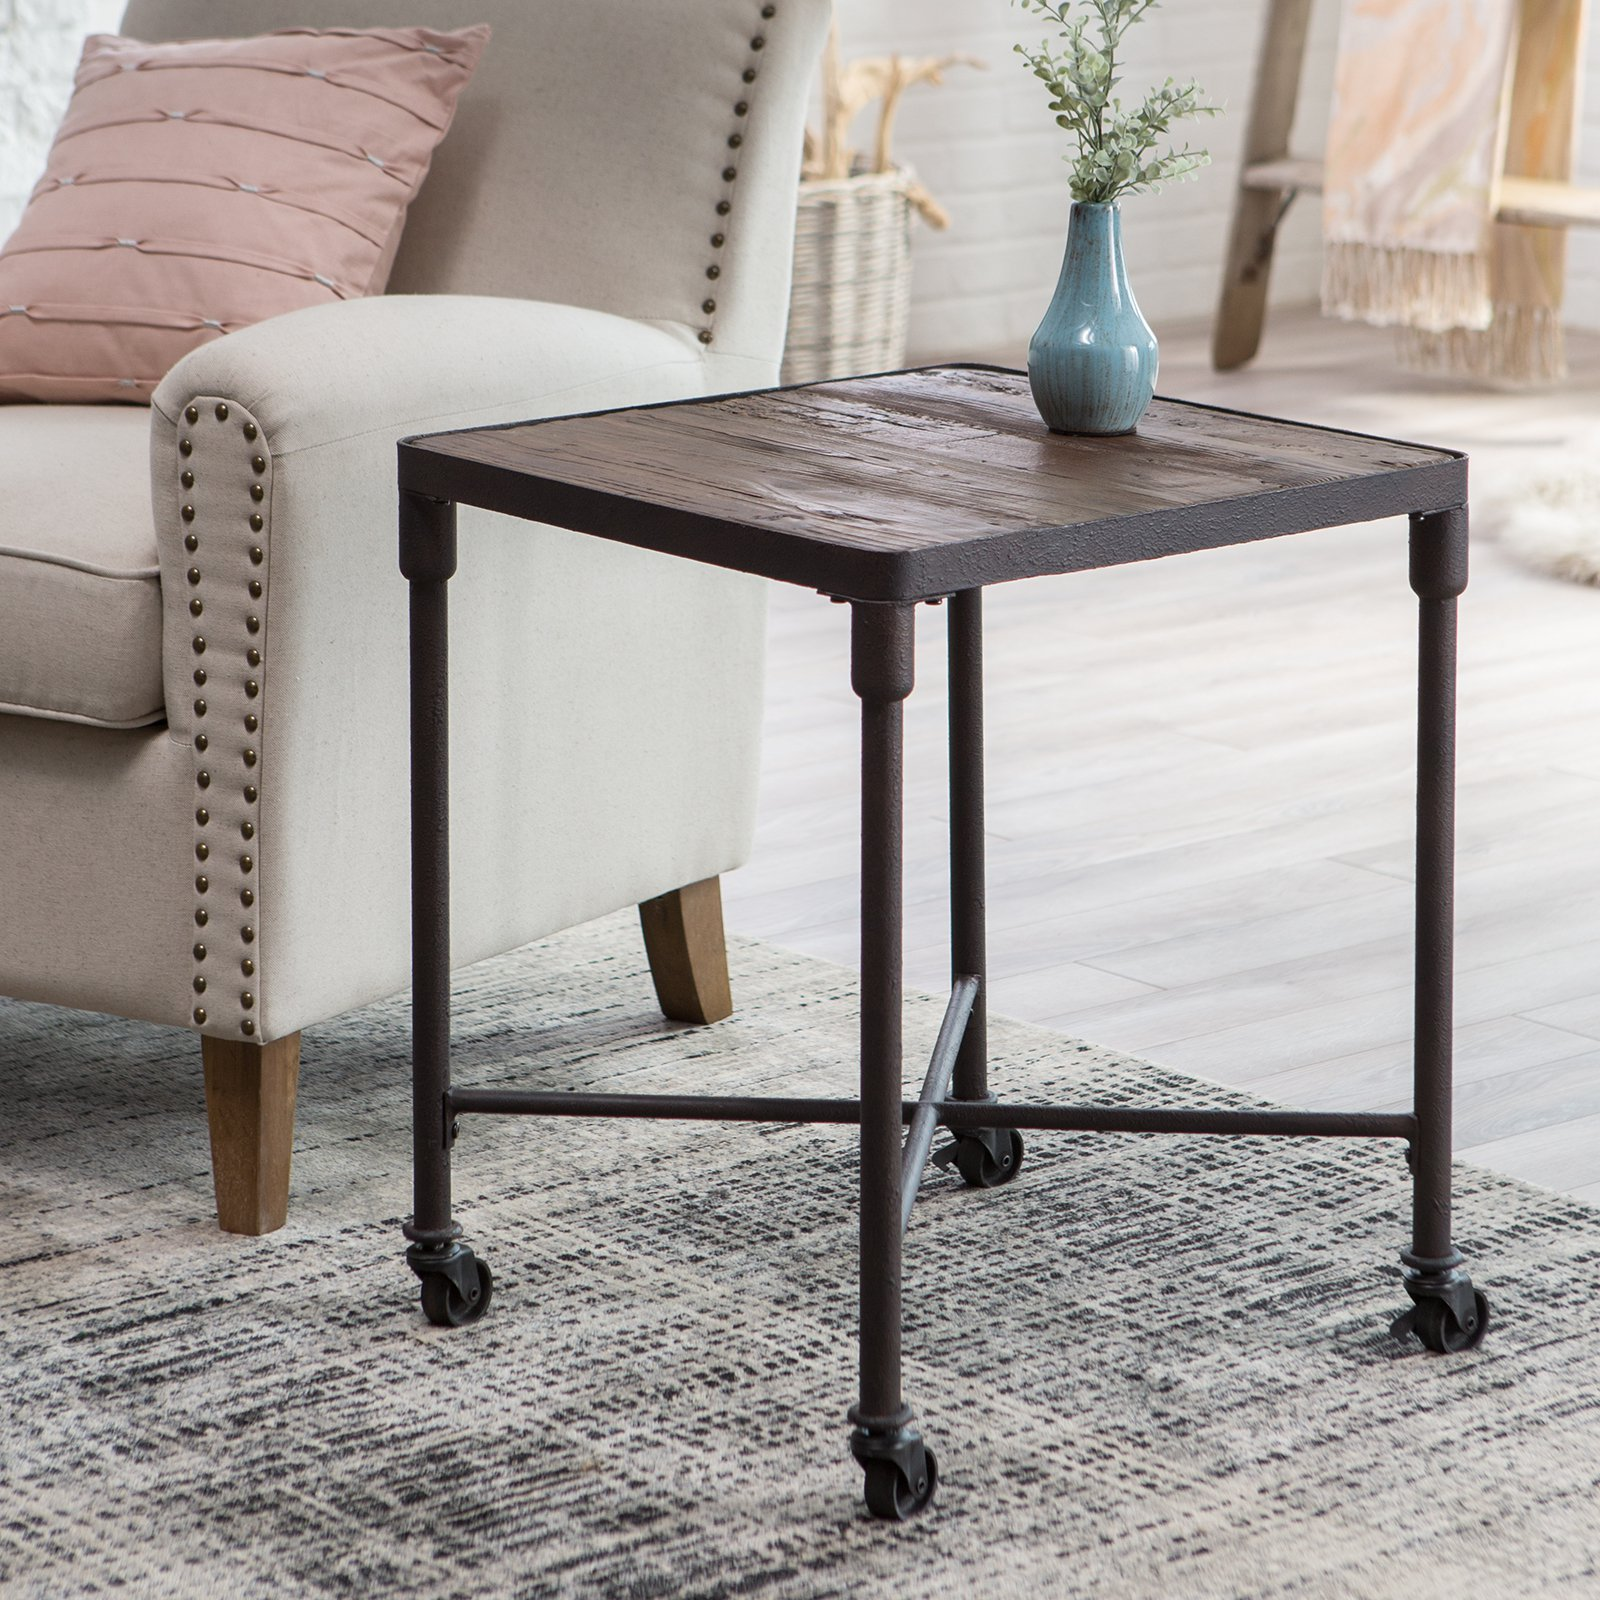 belham living franklin reclaimed wood industrial end table master with pipe legs farmhouse base badcock home furniture reviews used dining room chairs fitted tablecloths raw